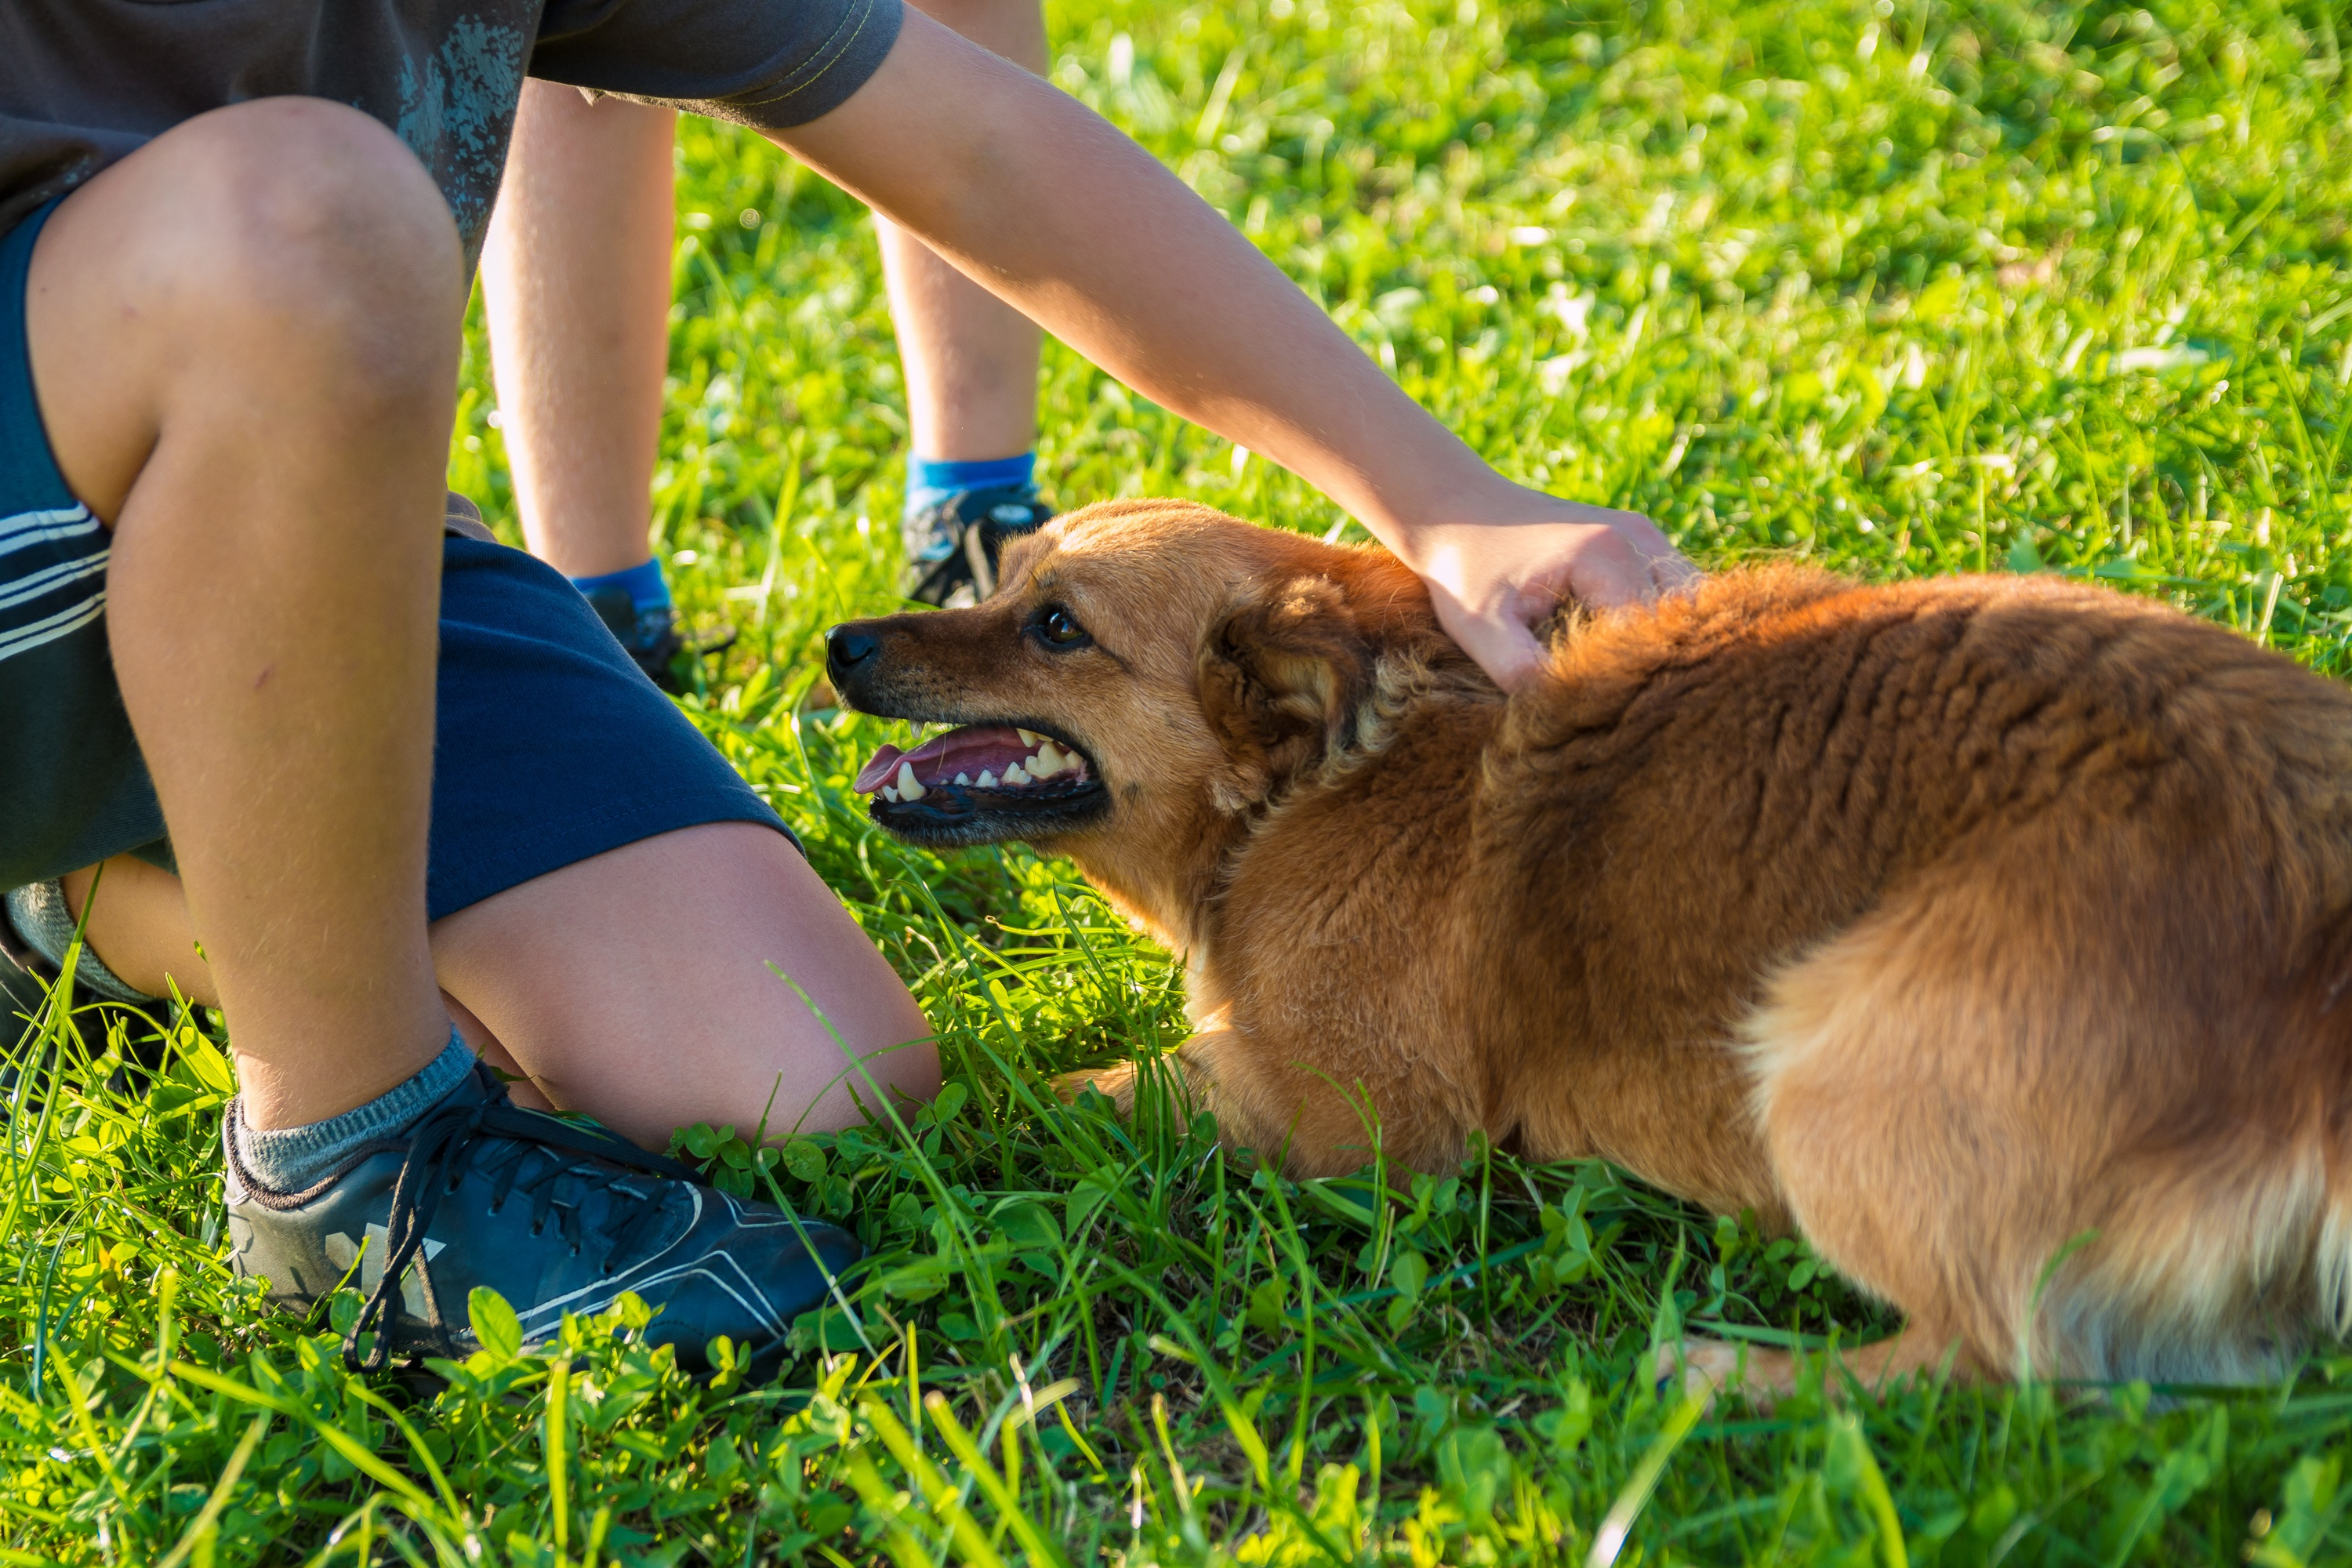 Fewer chemicals mean a safer place to play for children and pets.